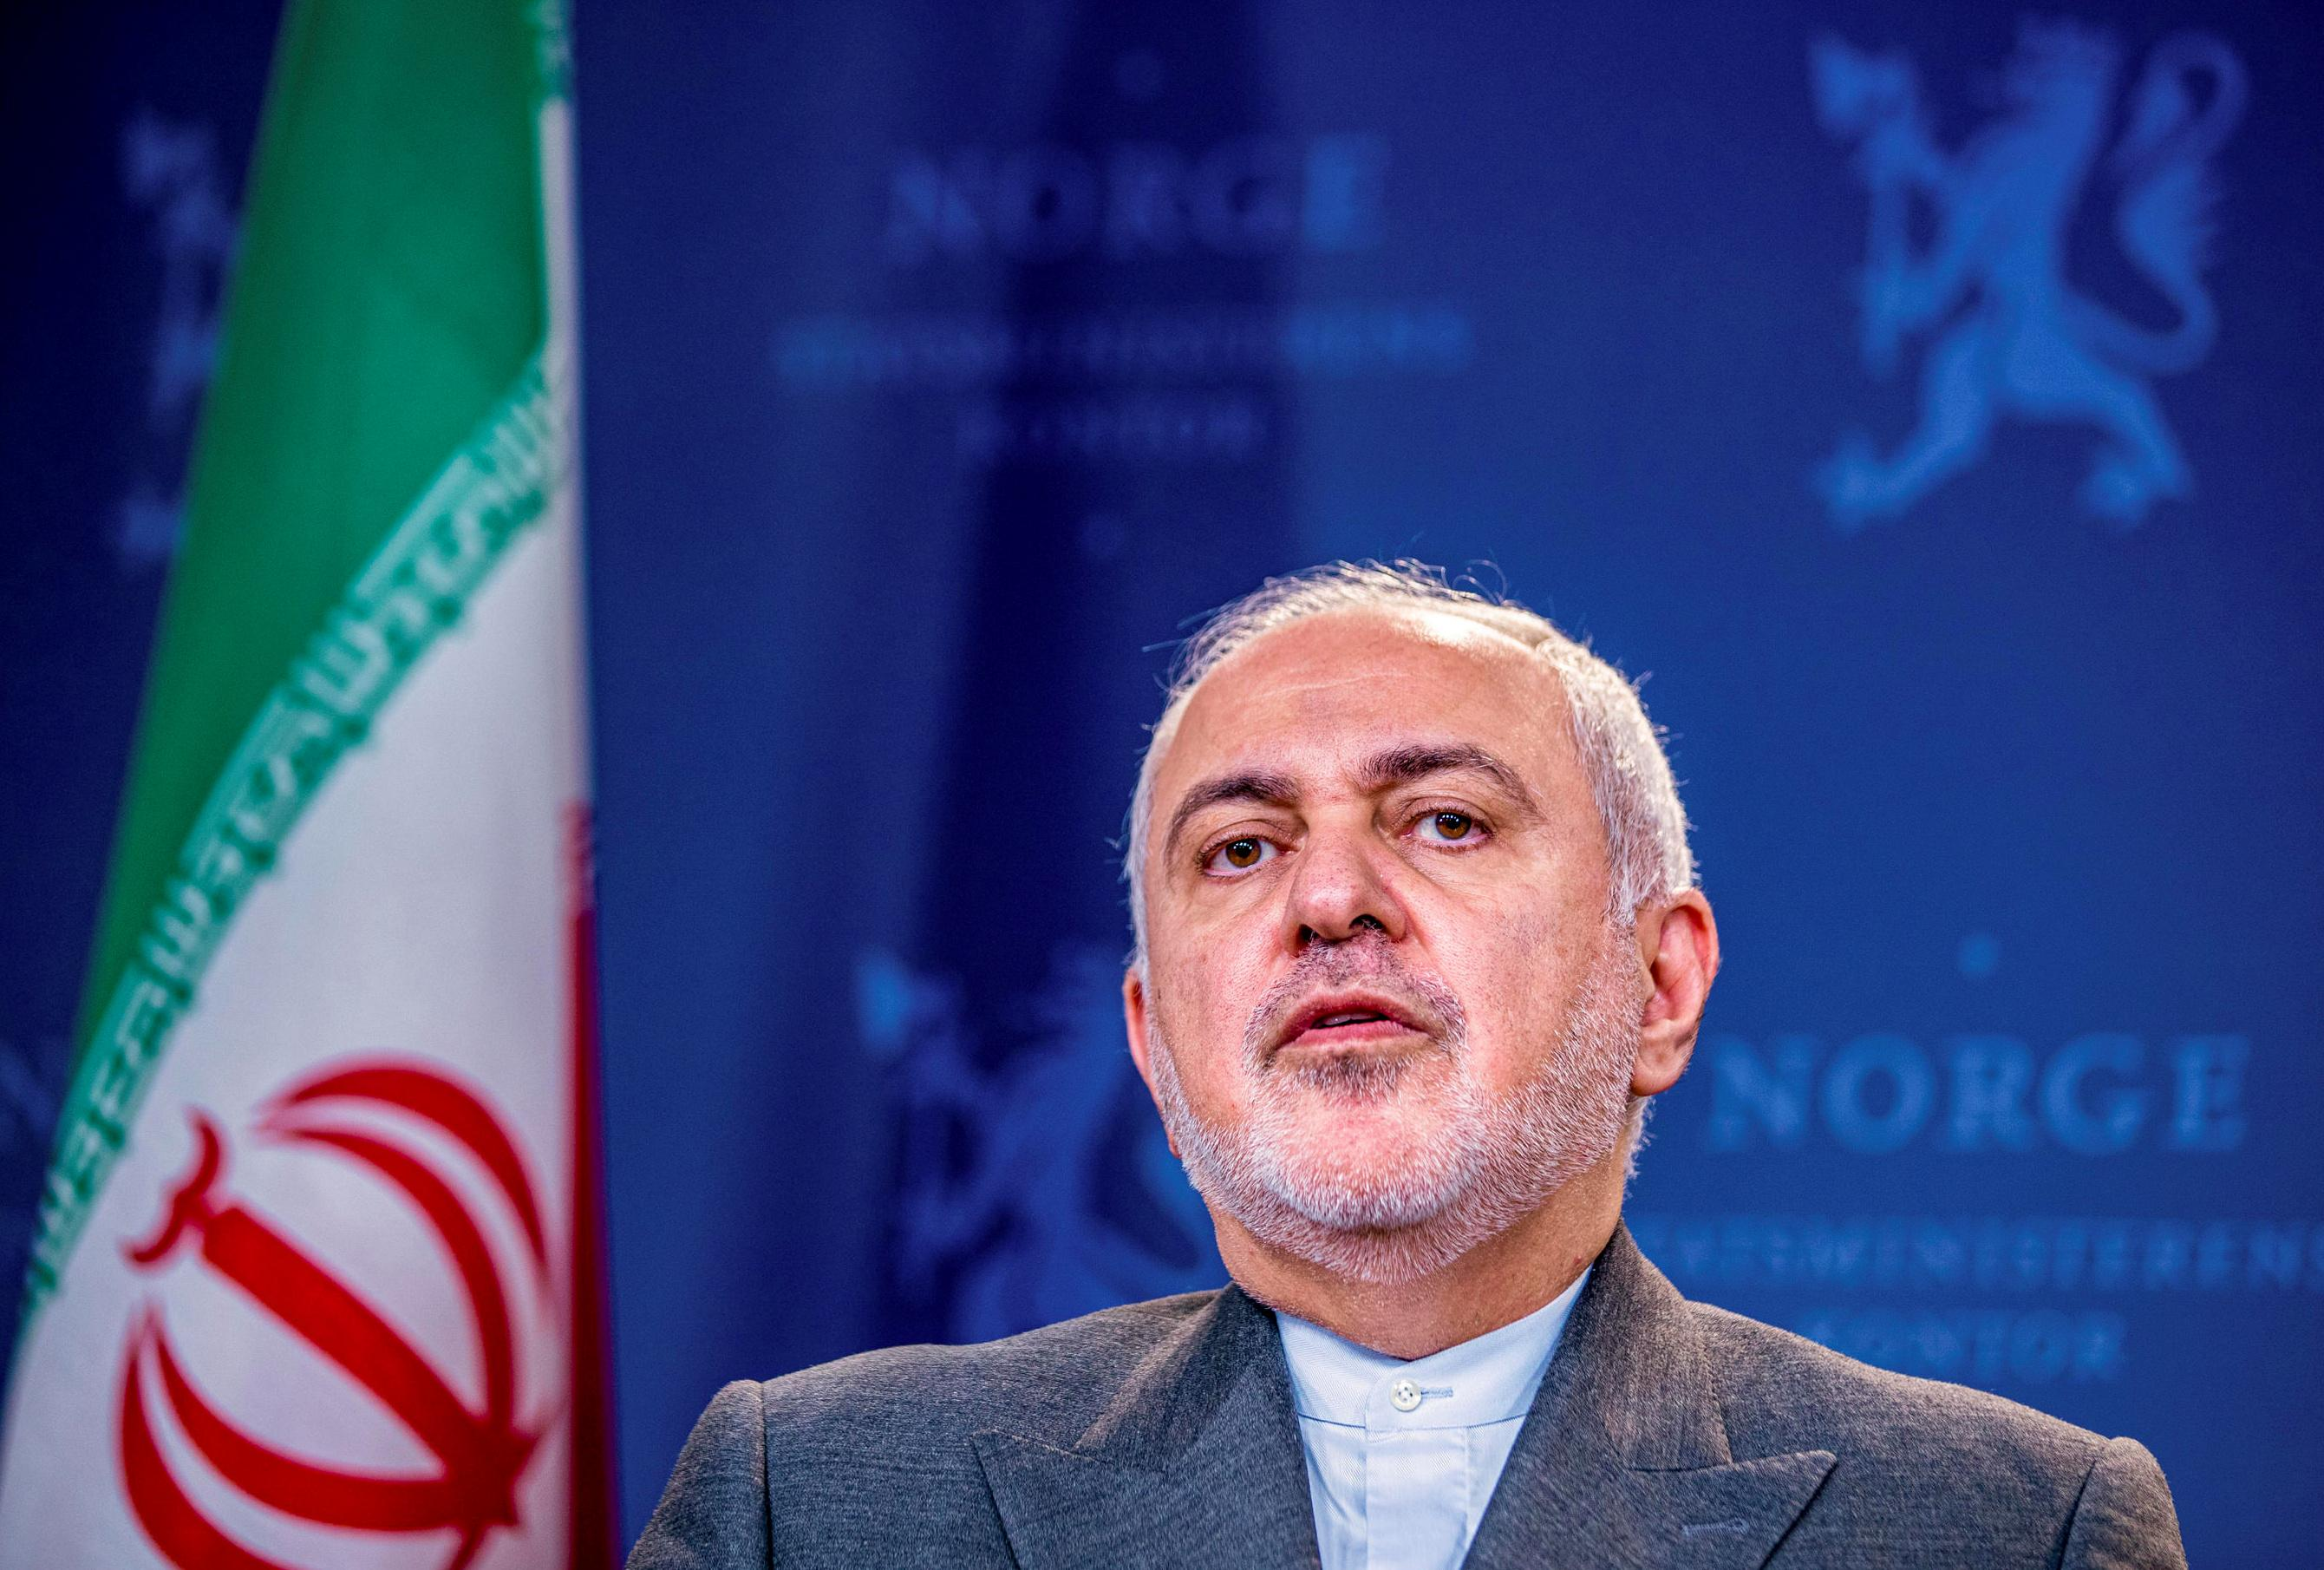 Iran's Zarif leaves G7 talks, unclear if progress made to ease tensions